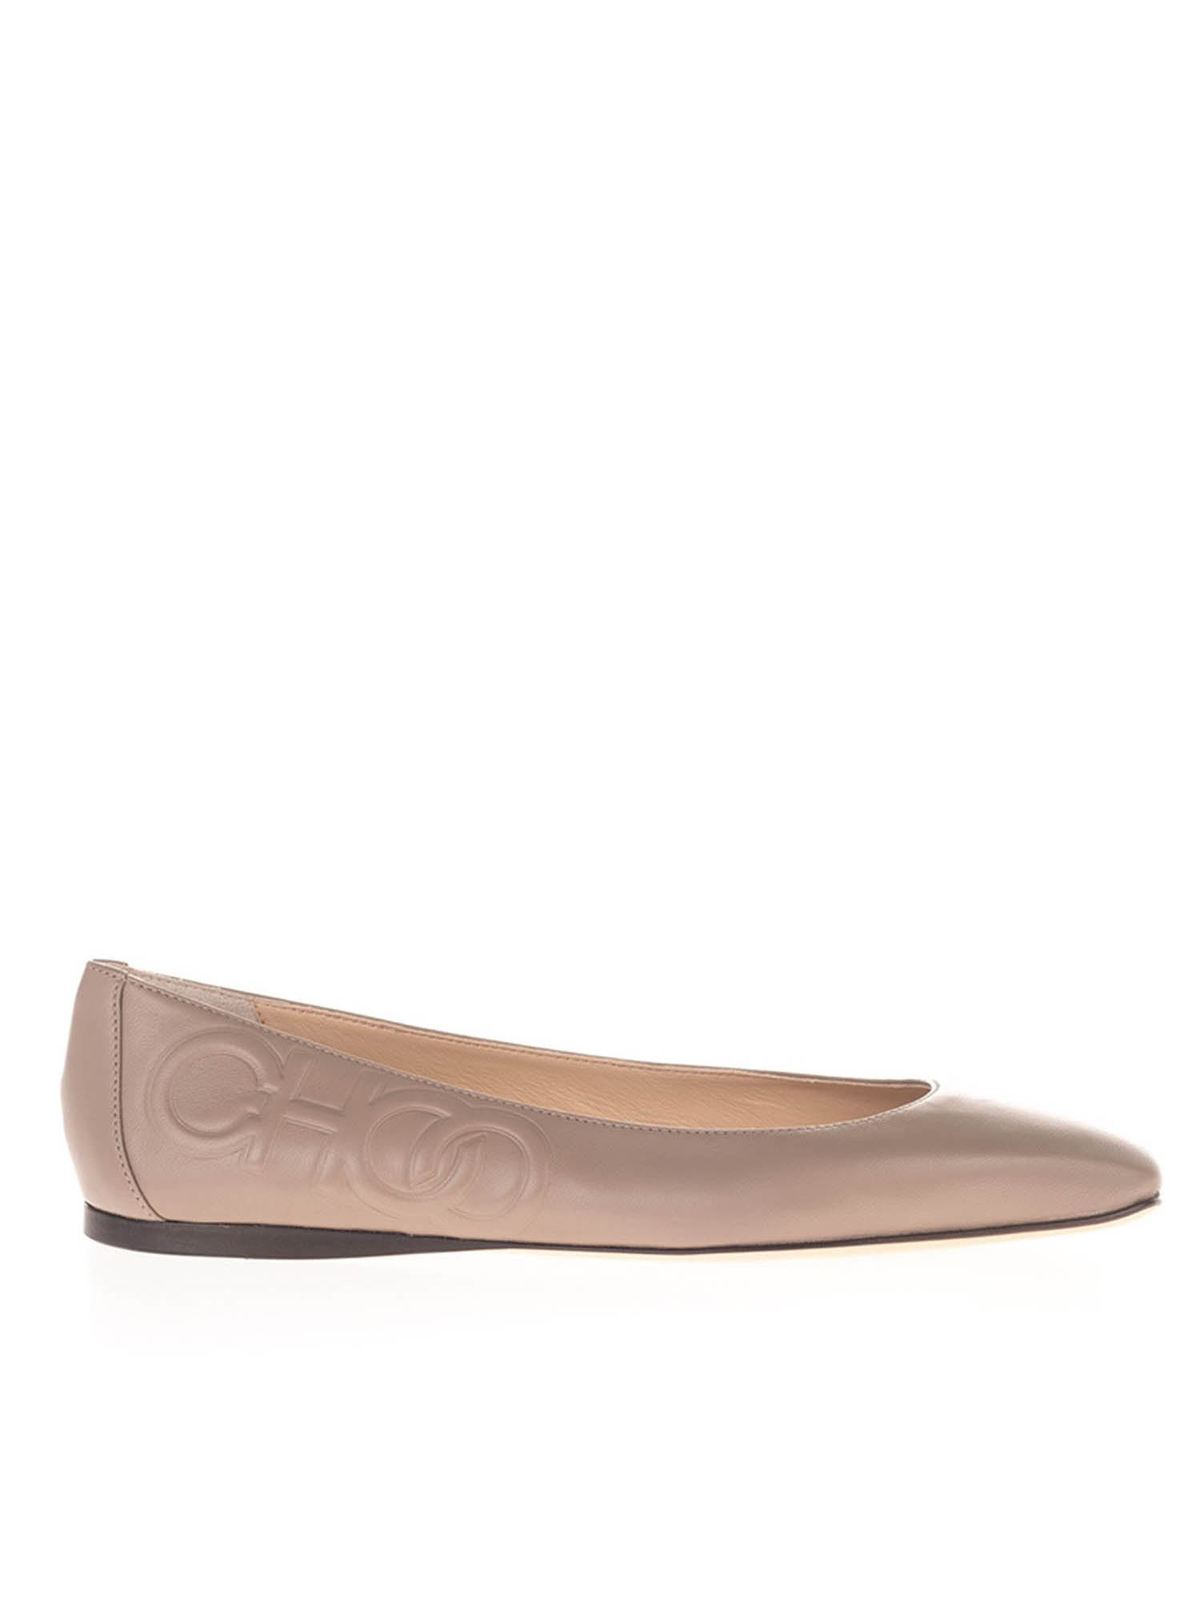 JIMMY CHOO GWNEVE FLAT IN PINK